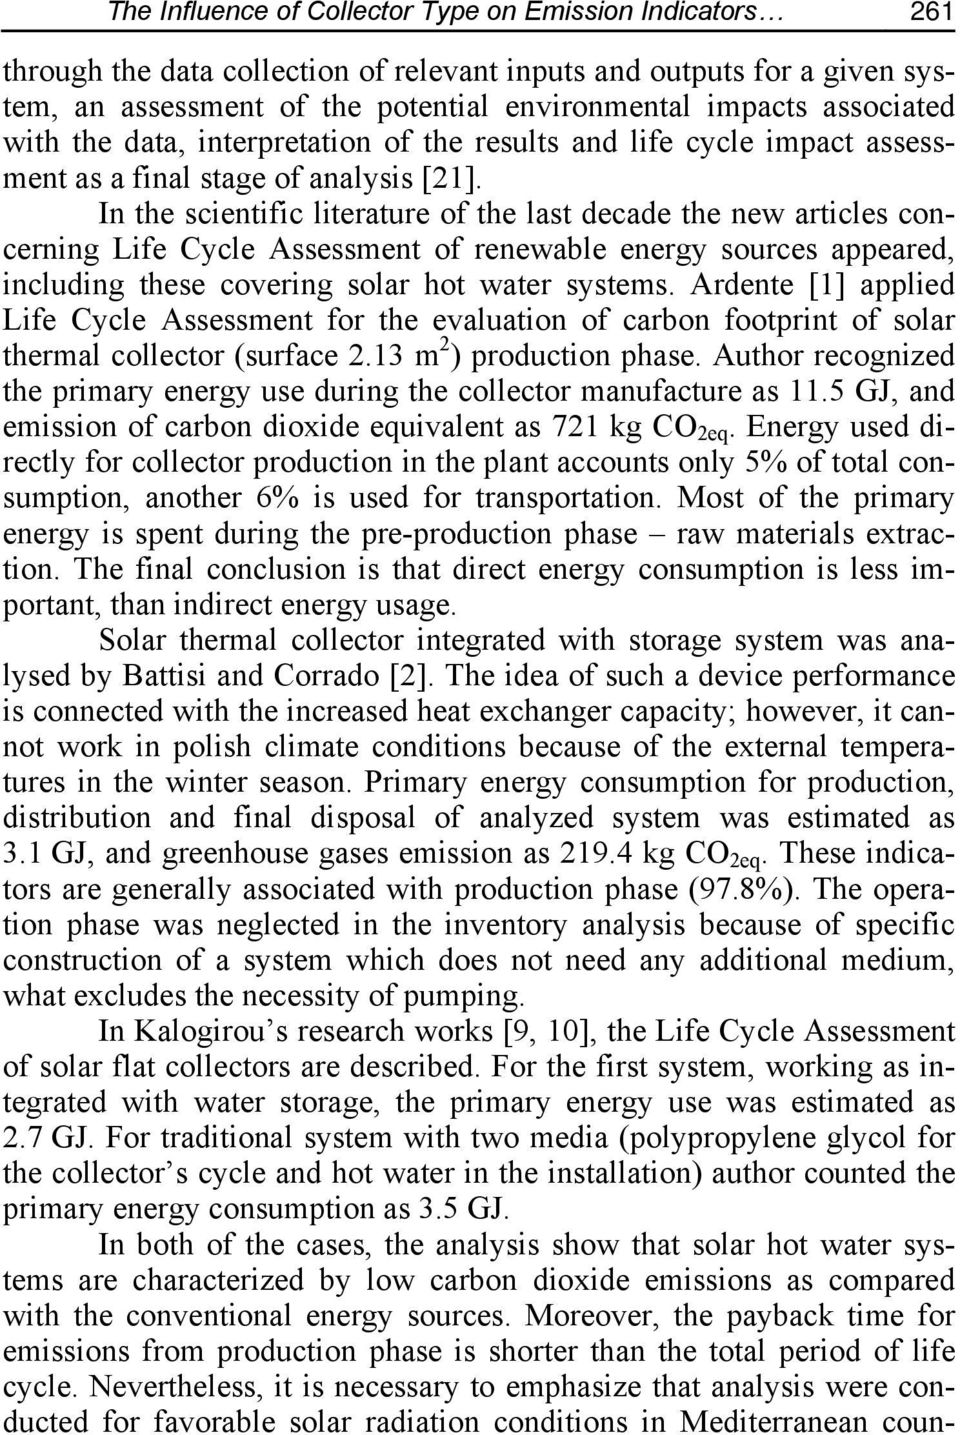 In the scientific literature of the last decade the new articles concerning Life Cycle Assessment of renewable energy sources appeared, including these covering solar hot water systems.